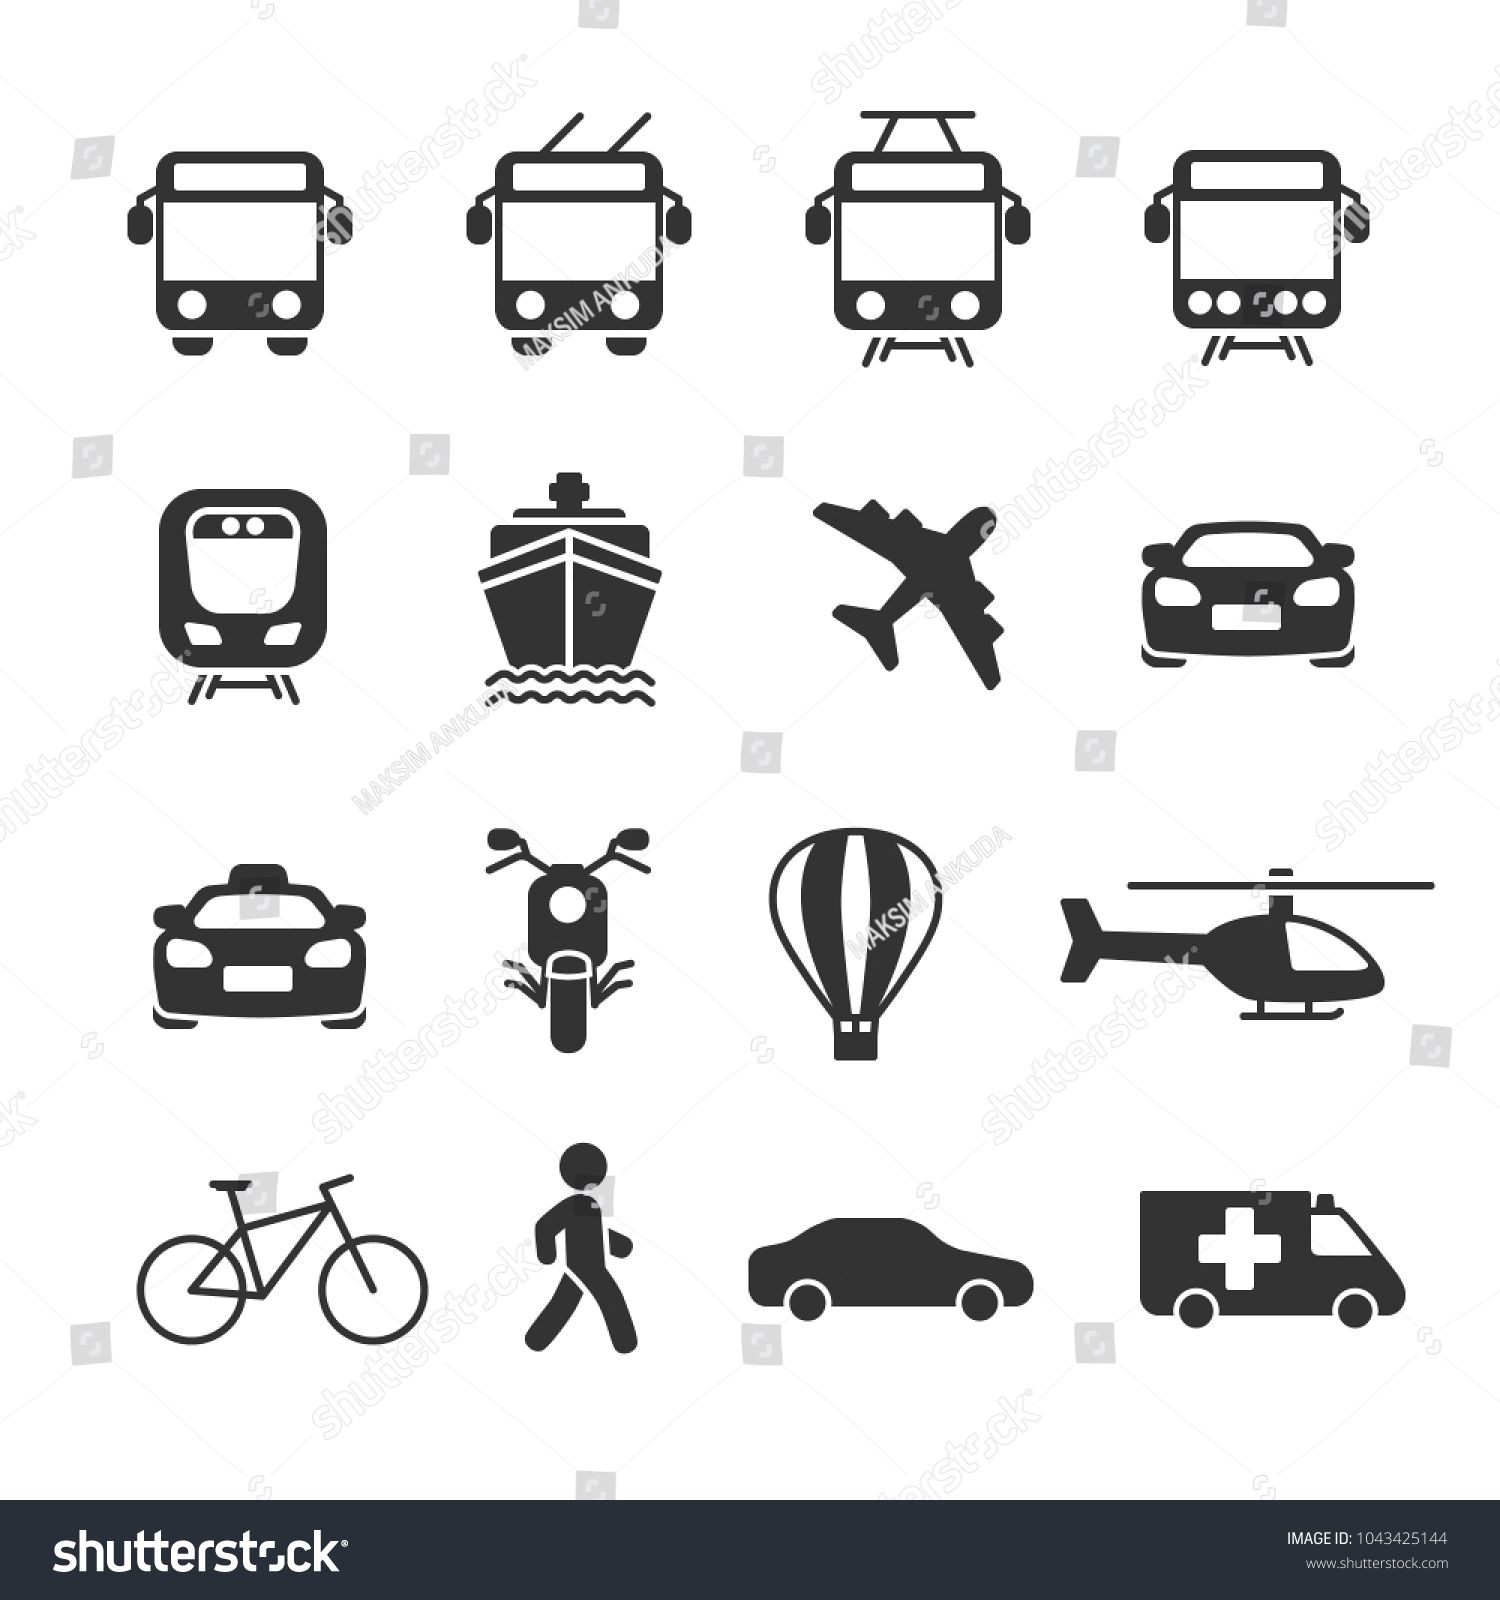 Vector image set of transport icons. #Sponsored , #Affiliate, #image#Vector#set#icons